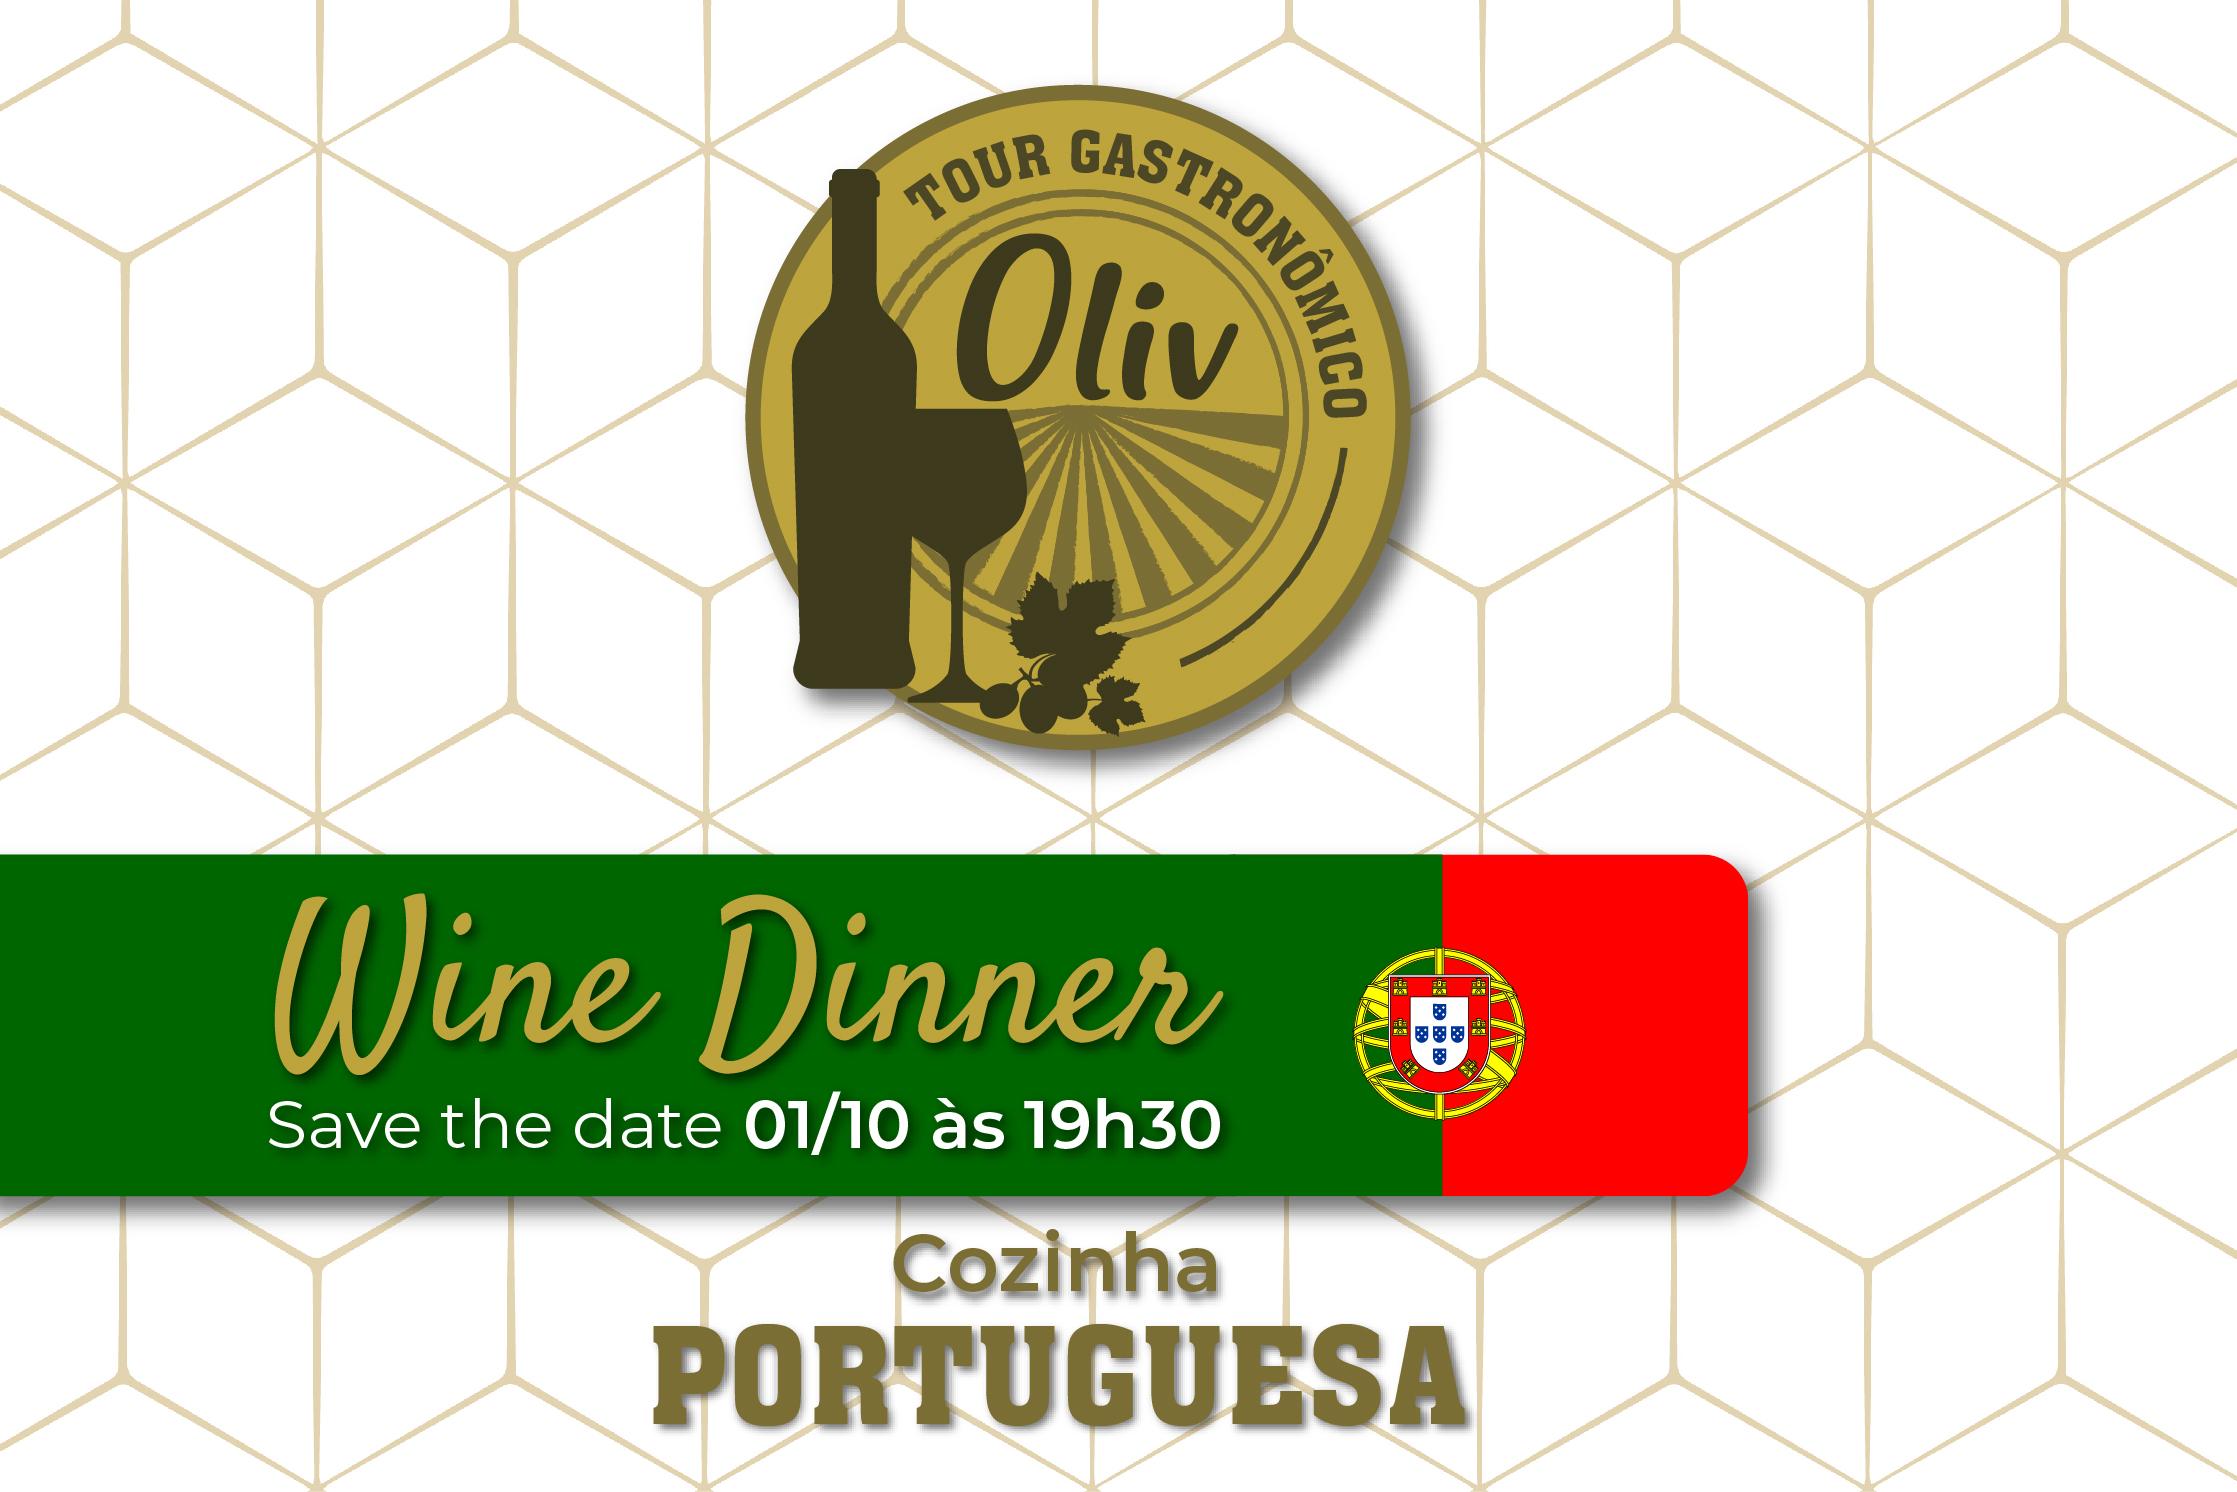 Wine Dinner - Tour Gastronômico Oliv  |  Portugal  |  01/10/2019